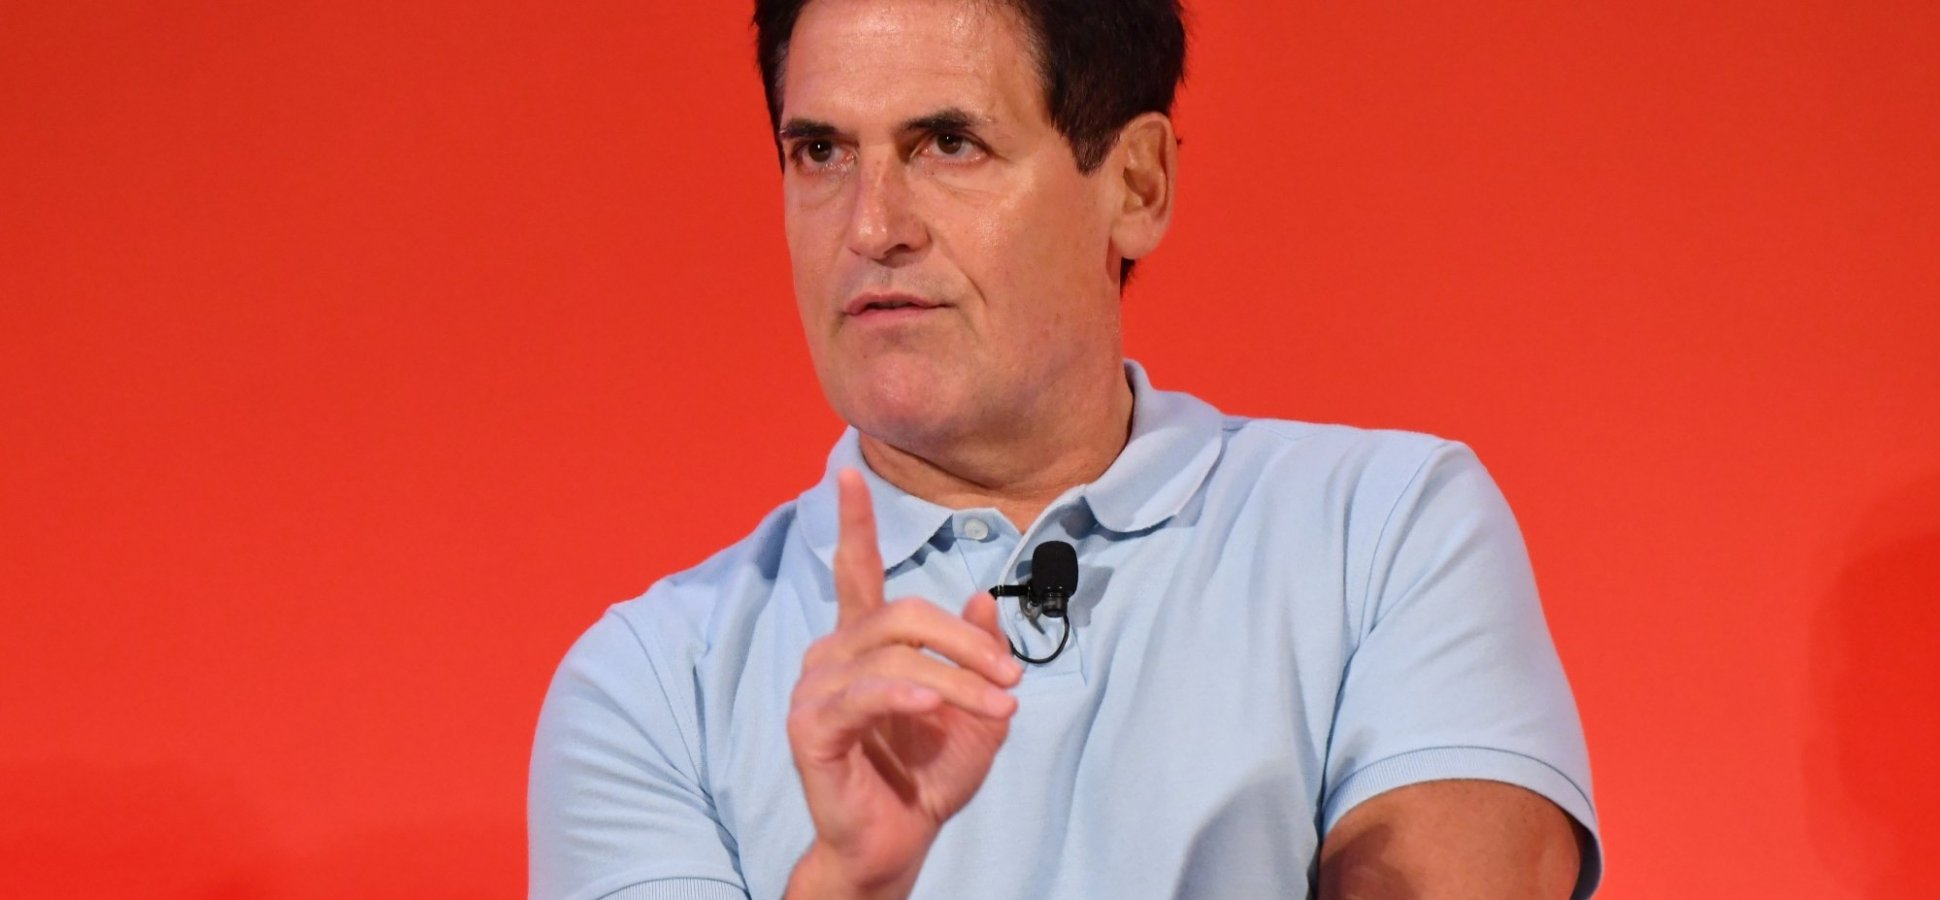 Mark Cuban Dropped a Truth Bomb About Why Businesses Fail. Here's What He Said